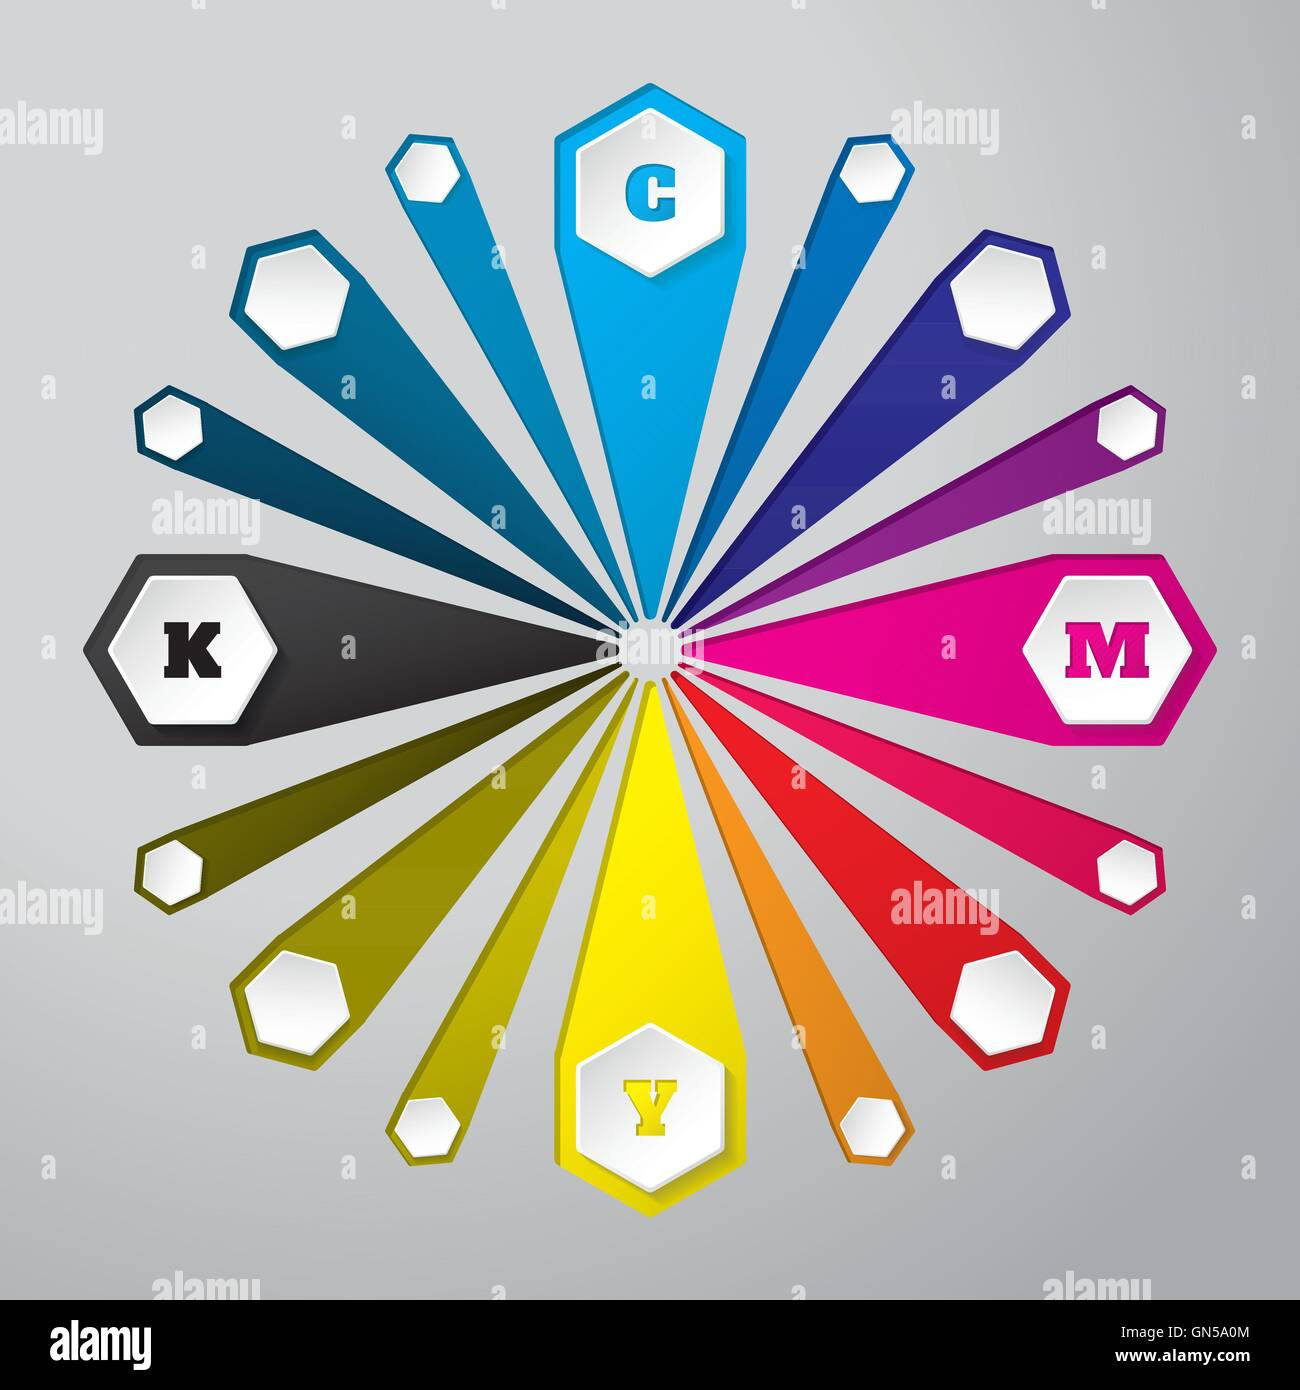 Cmyk wallpaper with 3d hexagons and color combinations - Stock Image